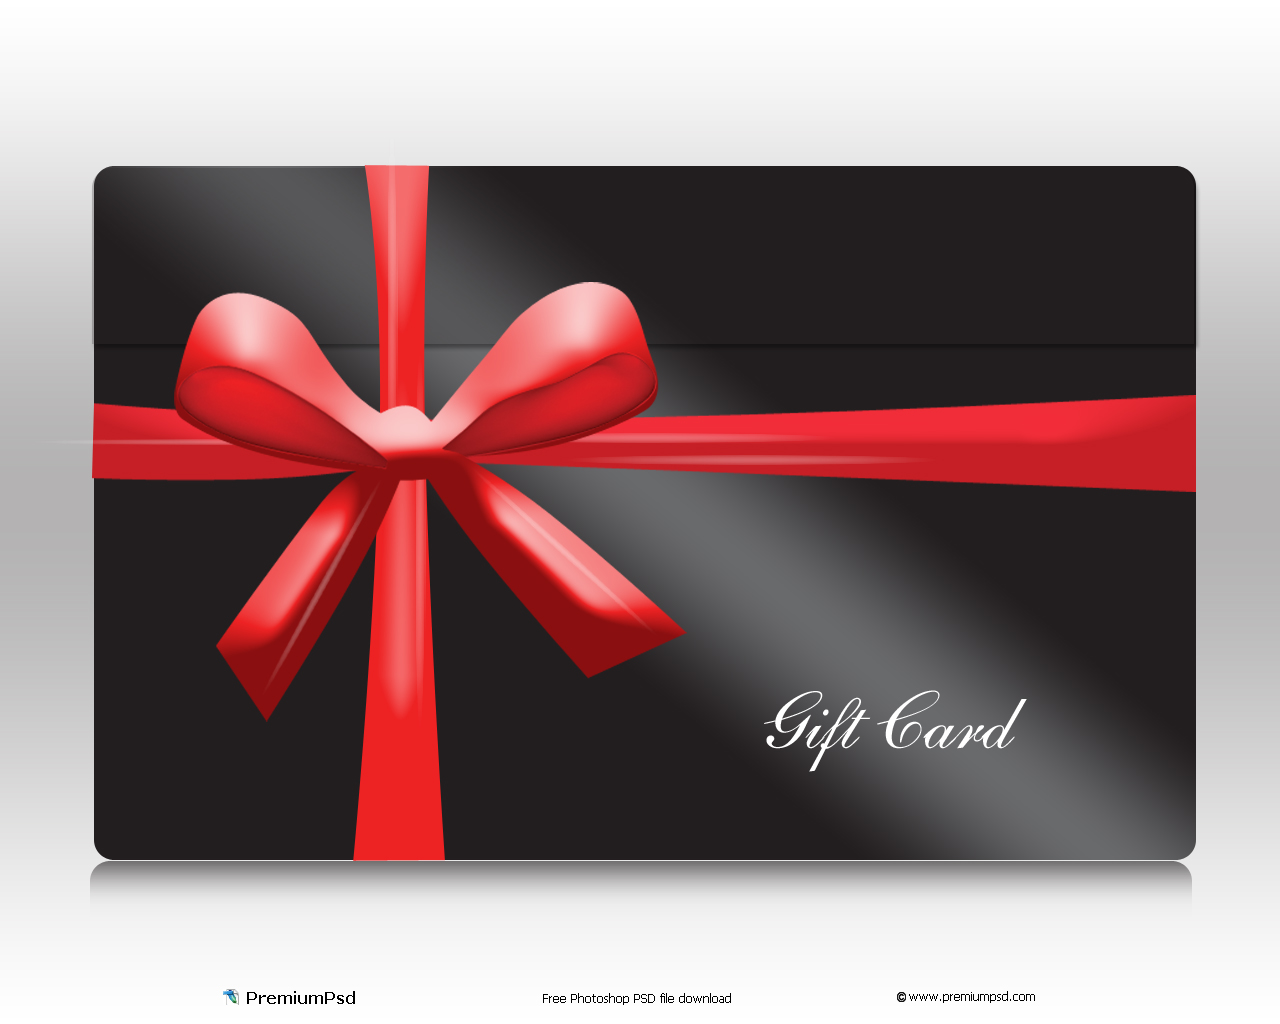 Visiting Cards Backgrounds Gift Card Premium Psd 209131 Wallpaper wallpaper